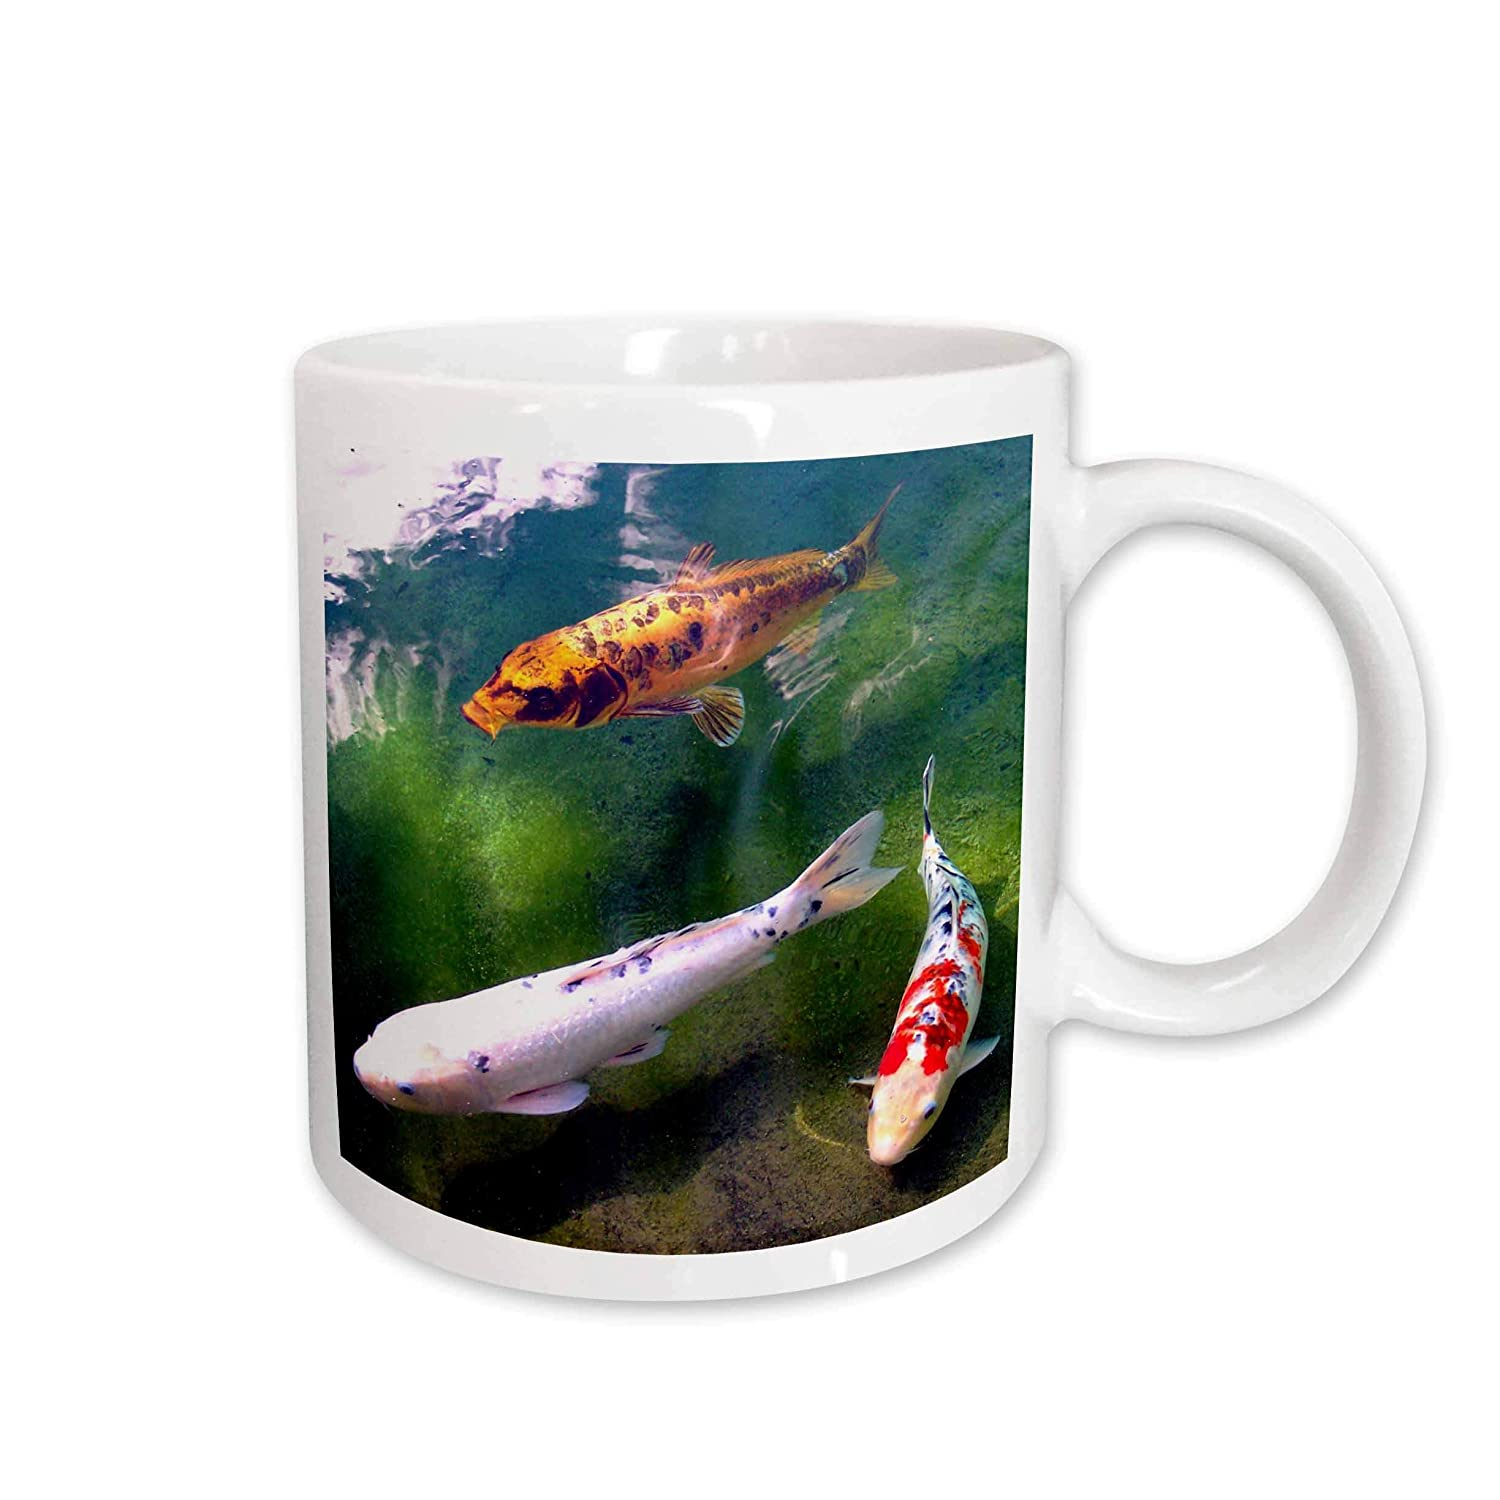 Buy 3drose Chinese Koi Carp Fish Mug 11 Ounce Online At Low Prices In India Amazon In